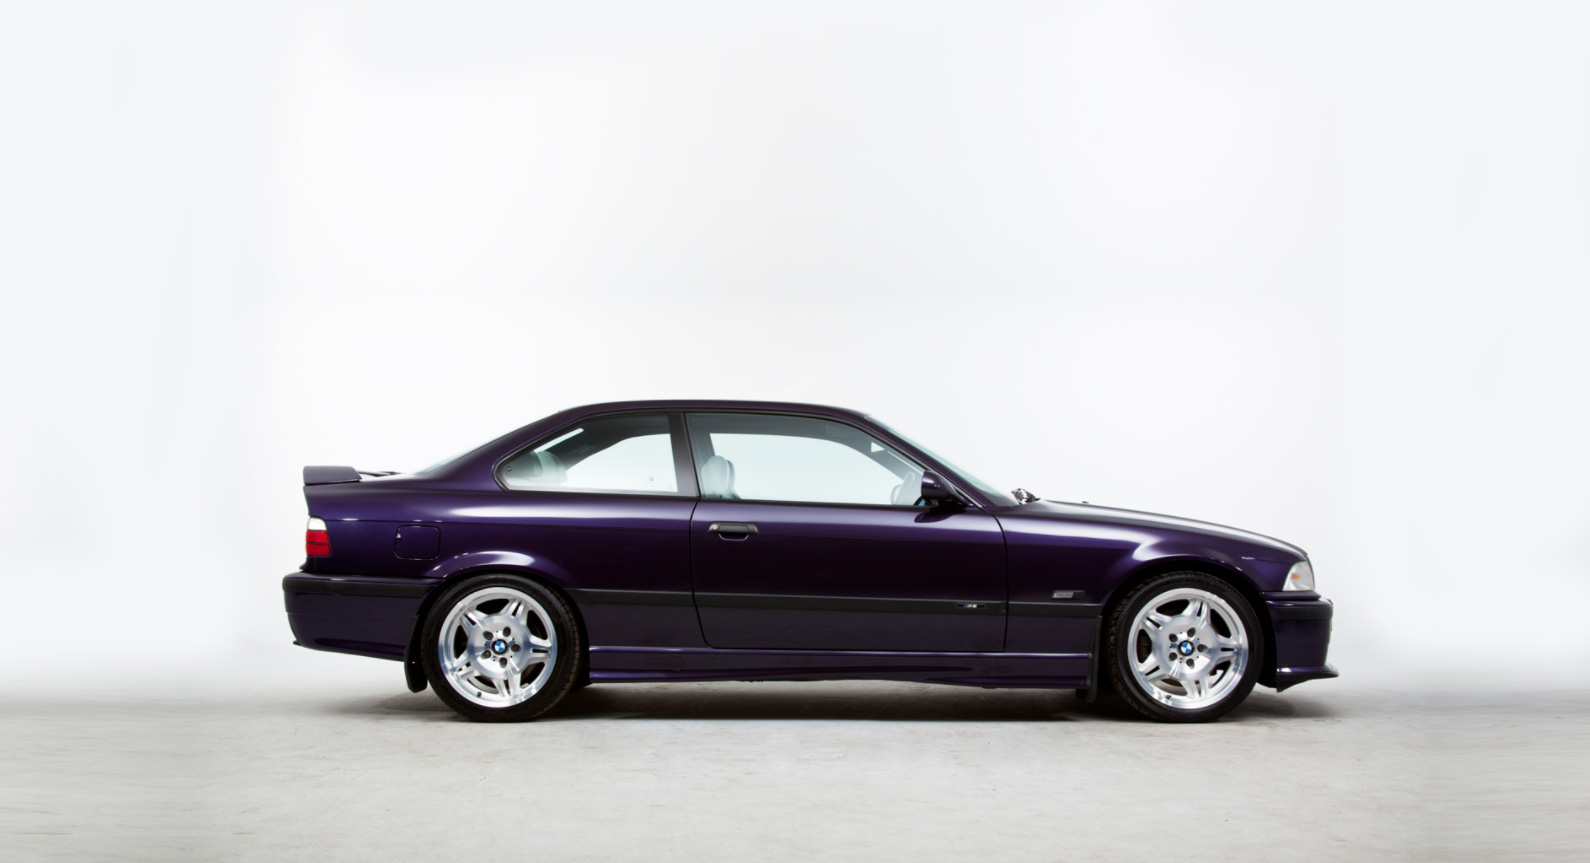 Exceptional Classic Car Find Of The Week: 1996 BMW E36 M3 Evolution